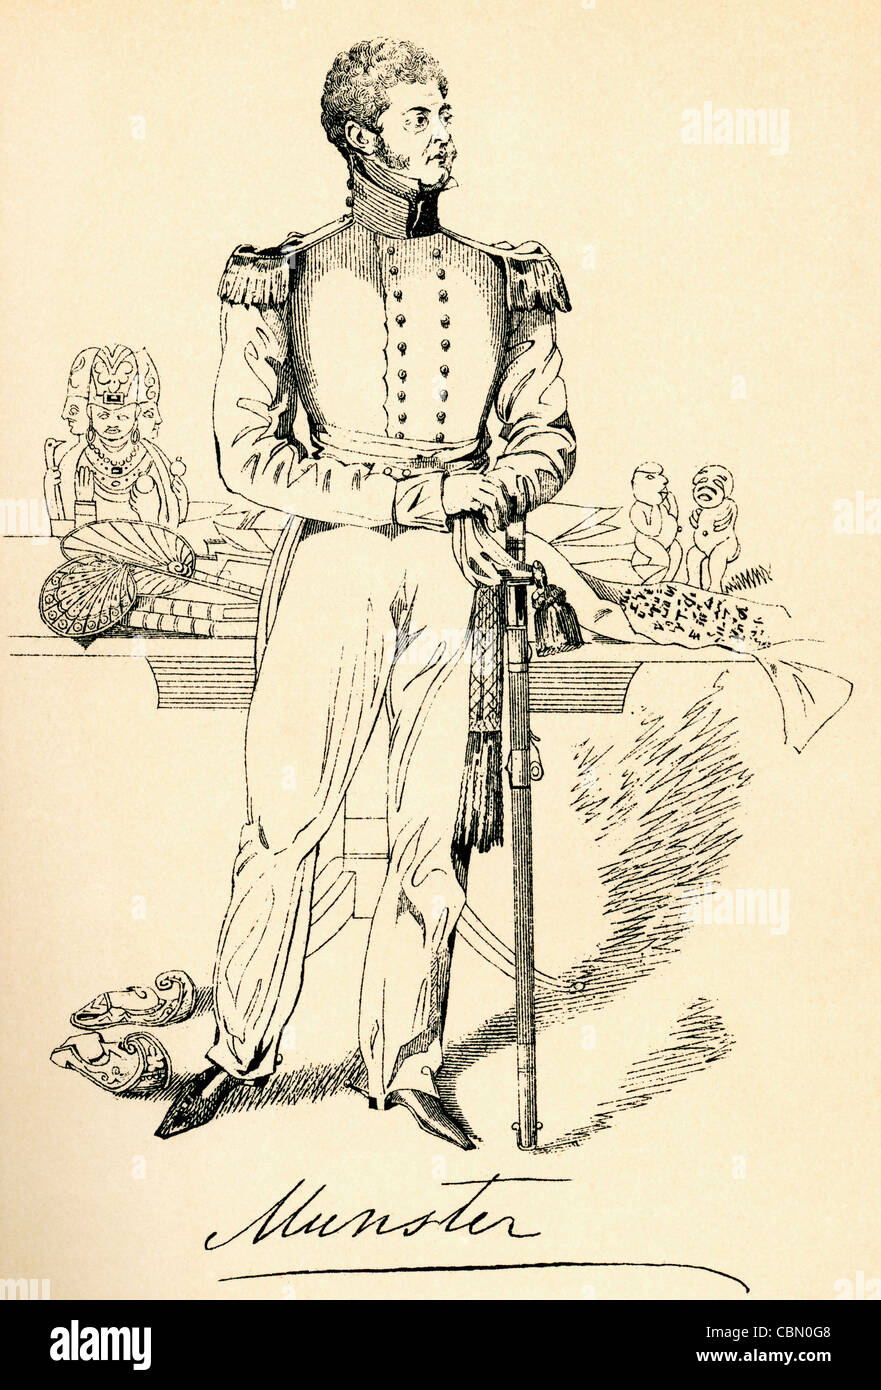 George Augustus Frederick FitzClarence, 1st Earl of Munster, 1794 – 1842. Eldest natural son of William IV of the - Stock Image